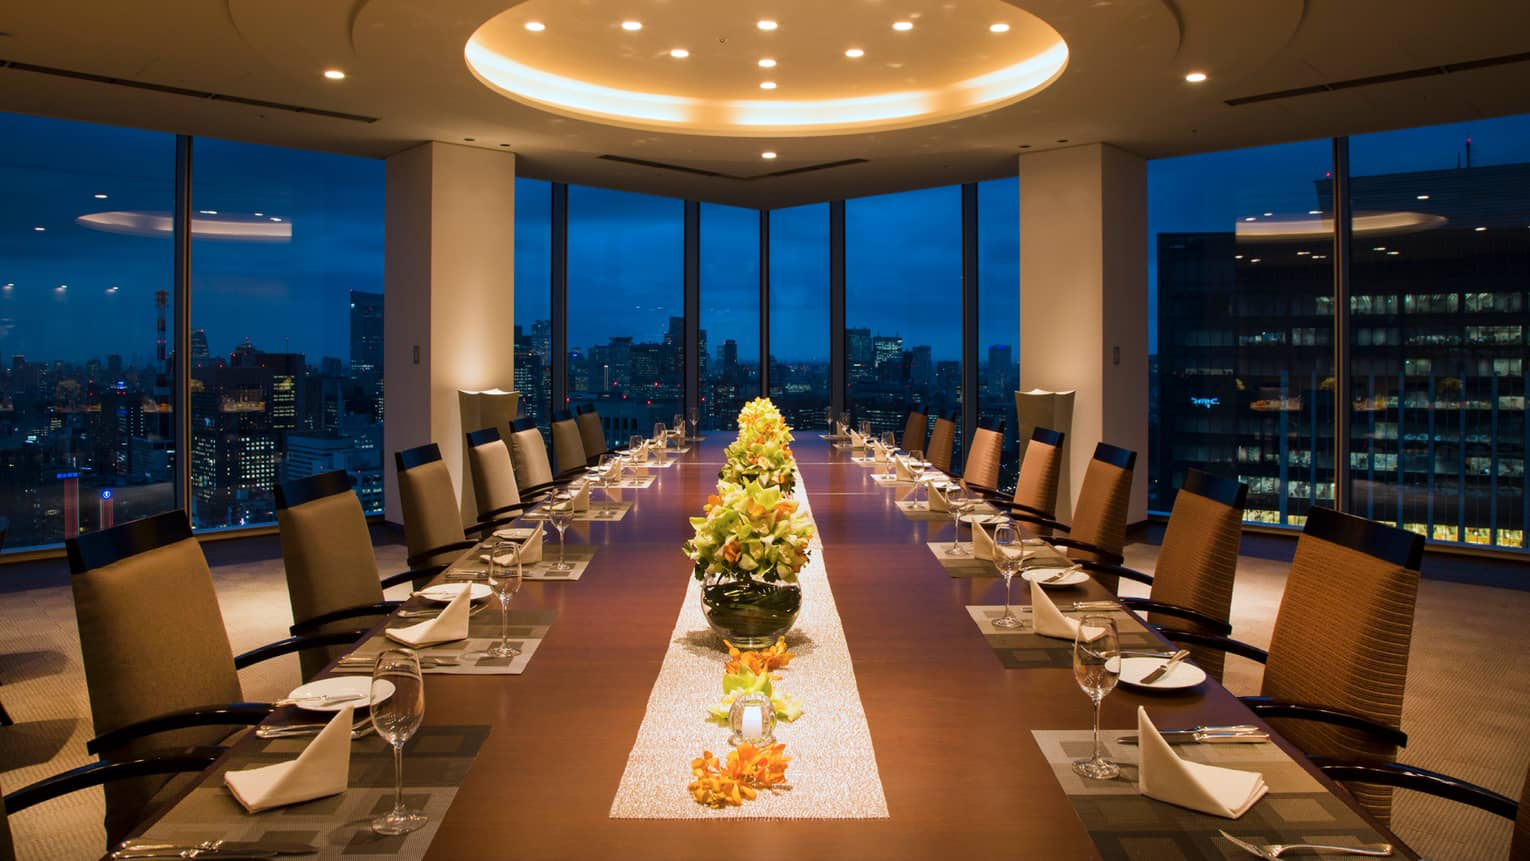 Long Executive Dining Room table under dome ceiling with lights, city lights through window